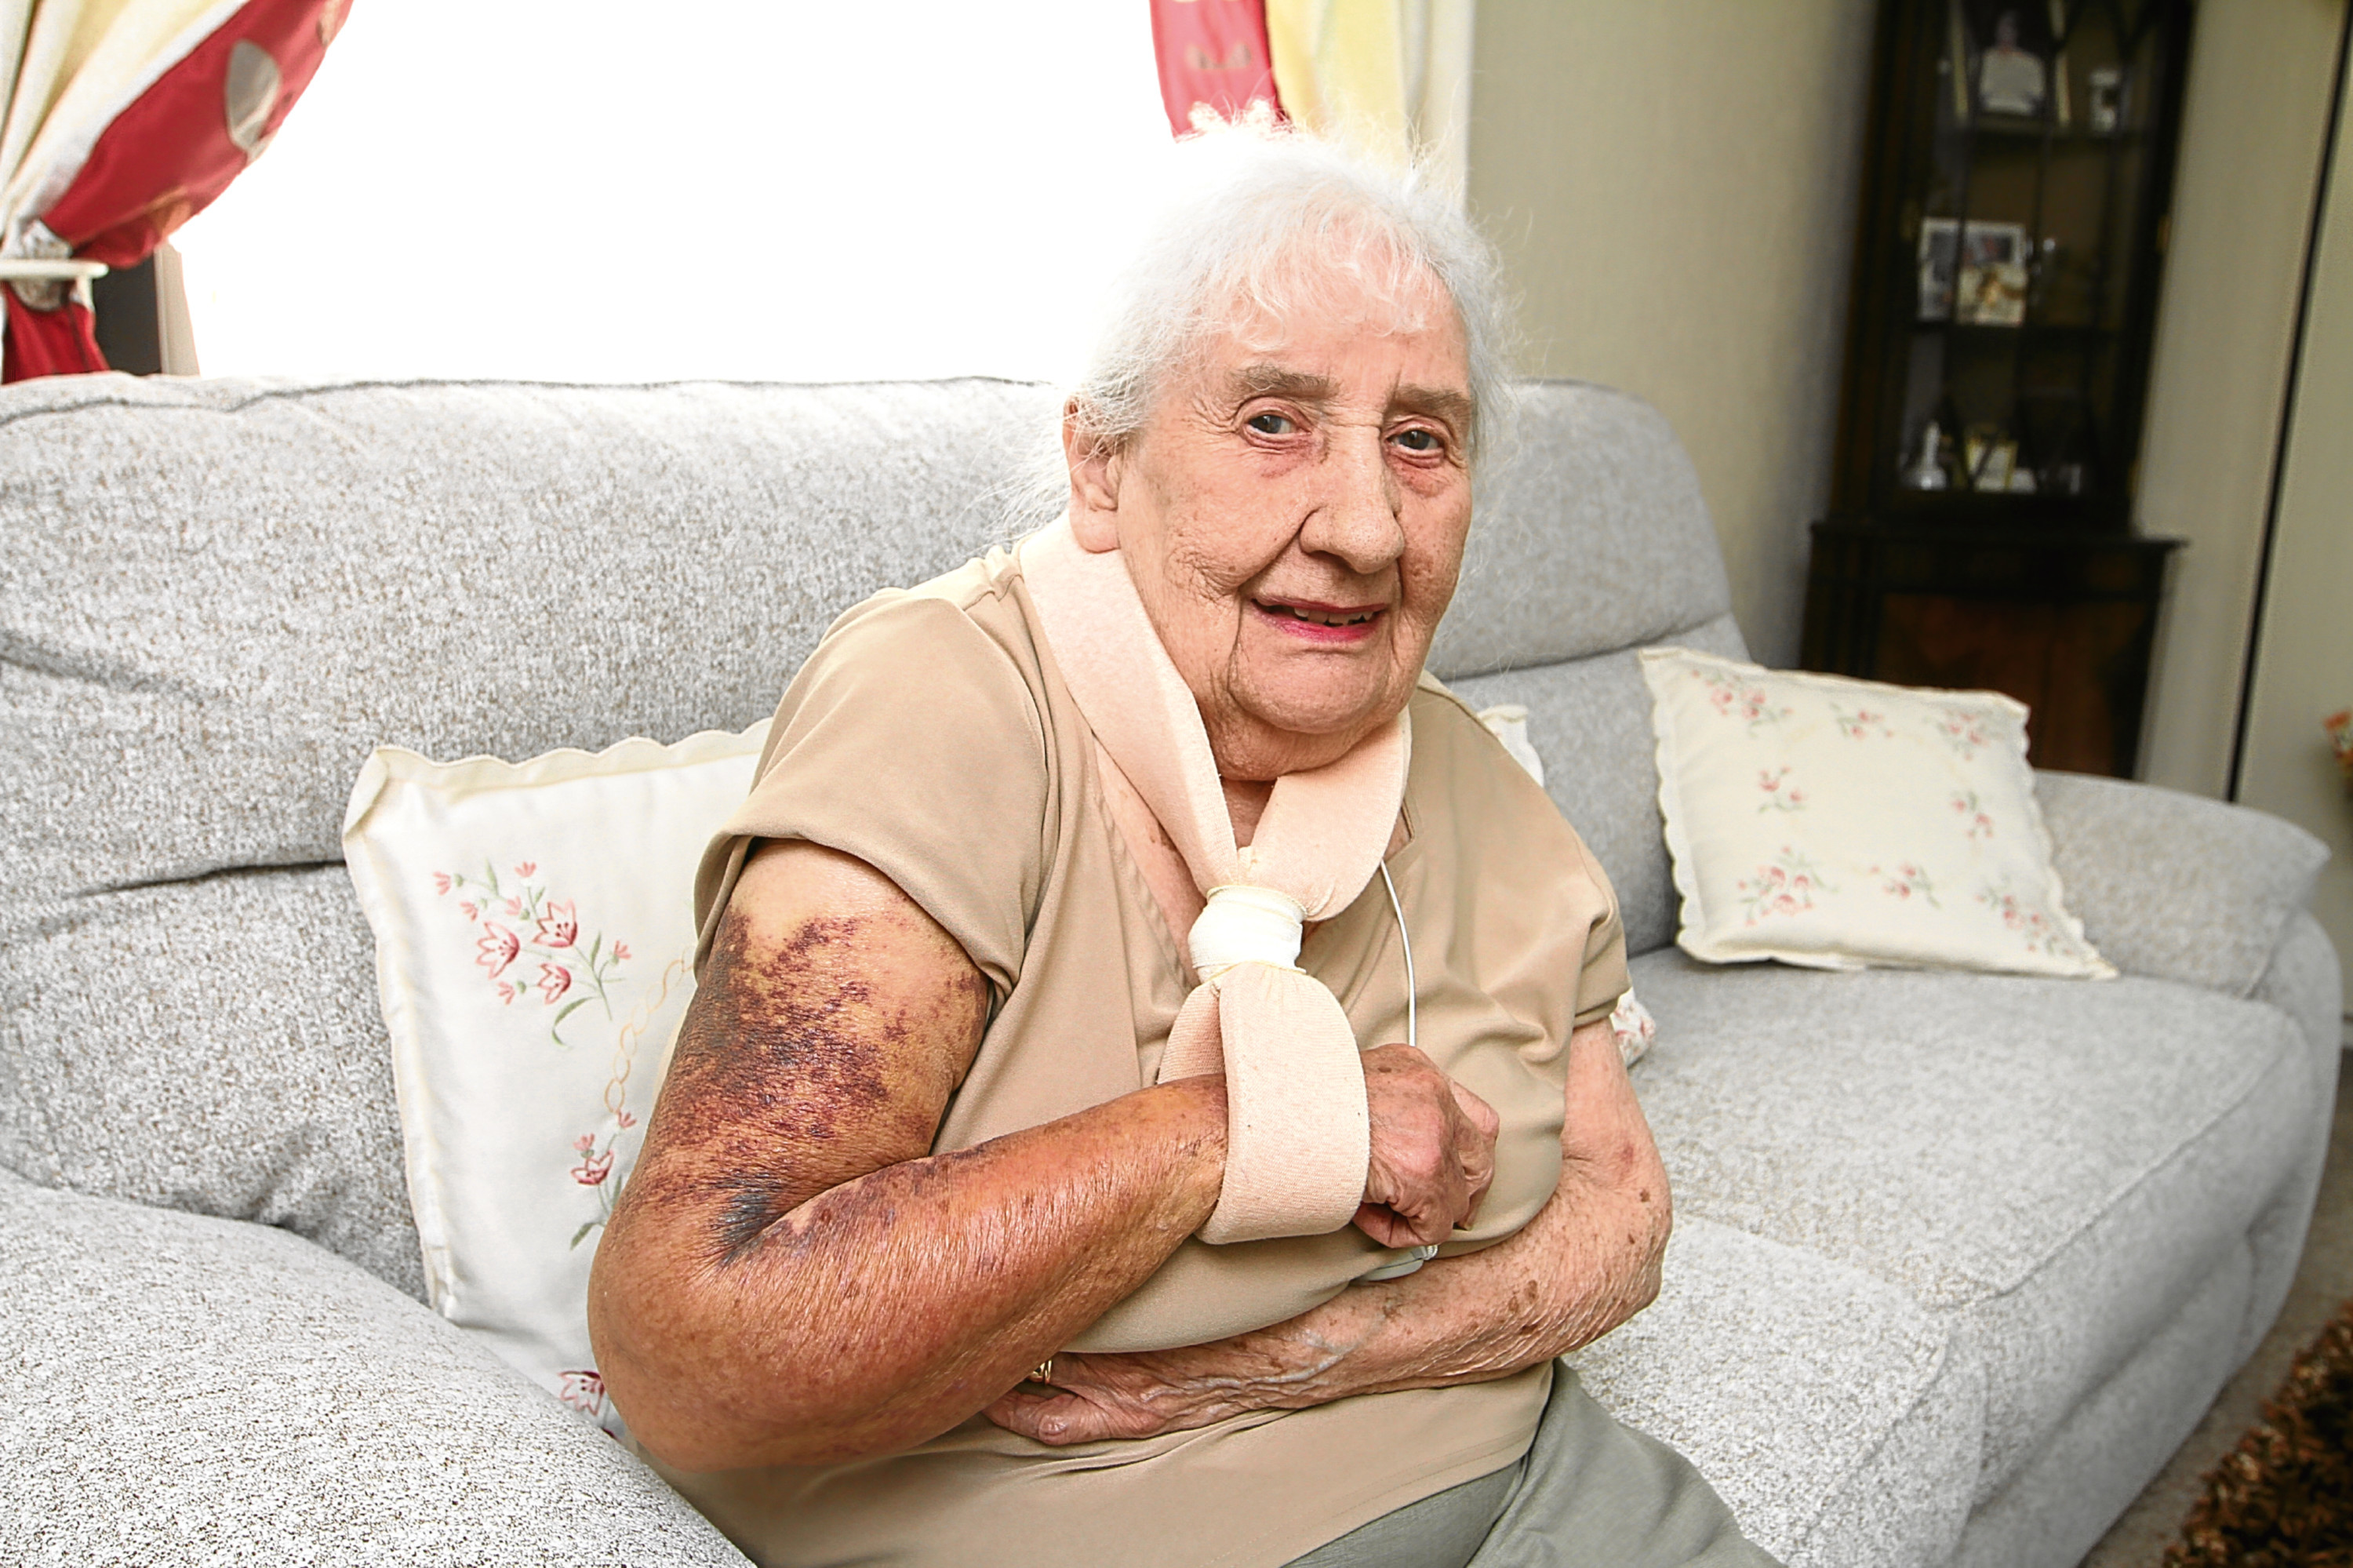 Grace recovering at home with her arm in a sling after her fall in Dundee city centre.